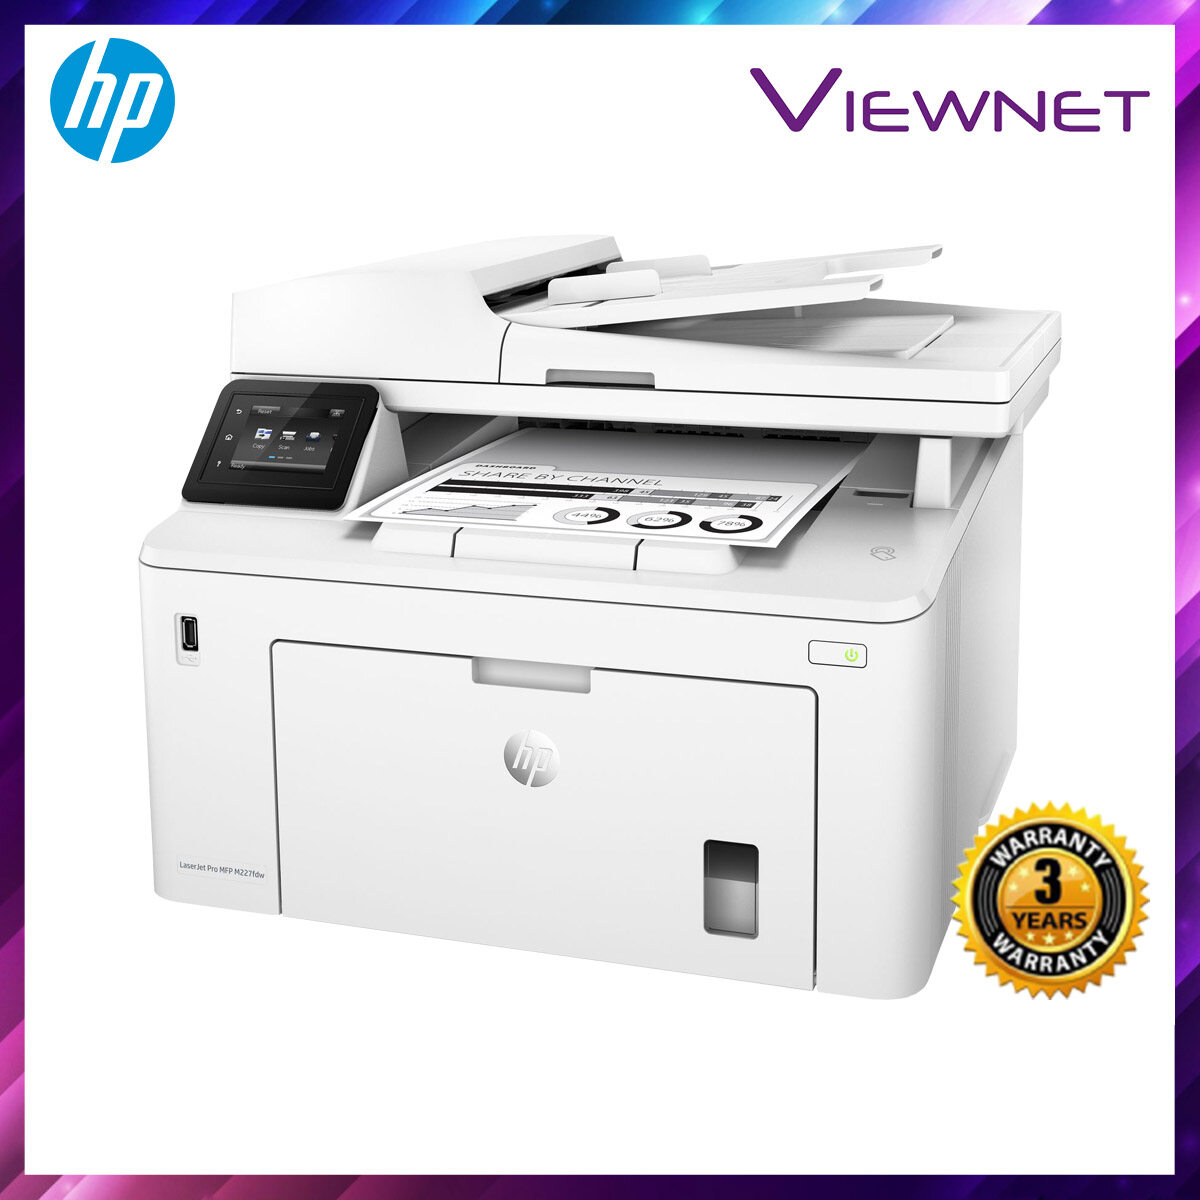 HP LASERJET PRO MFP MONO M227FDW PRINT, SCAN, COPY, FAX, NETWORK, WIRELESS 3 Years Onsite Warranty with 1-to-1 Unit exchange **NEED TO ONLINE REGISTER**